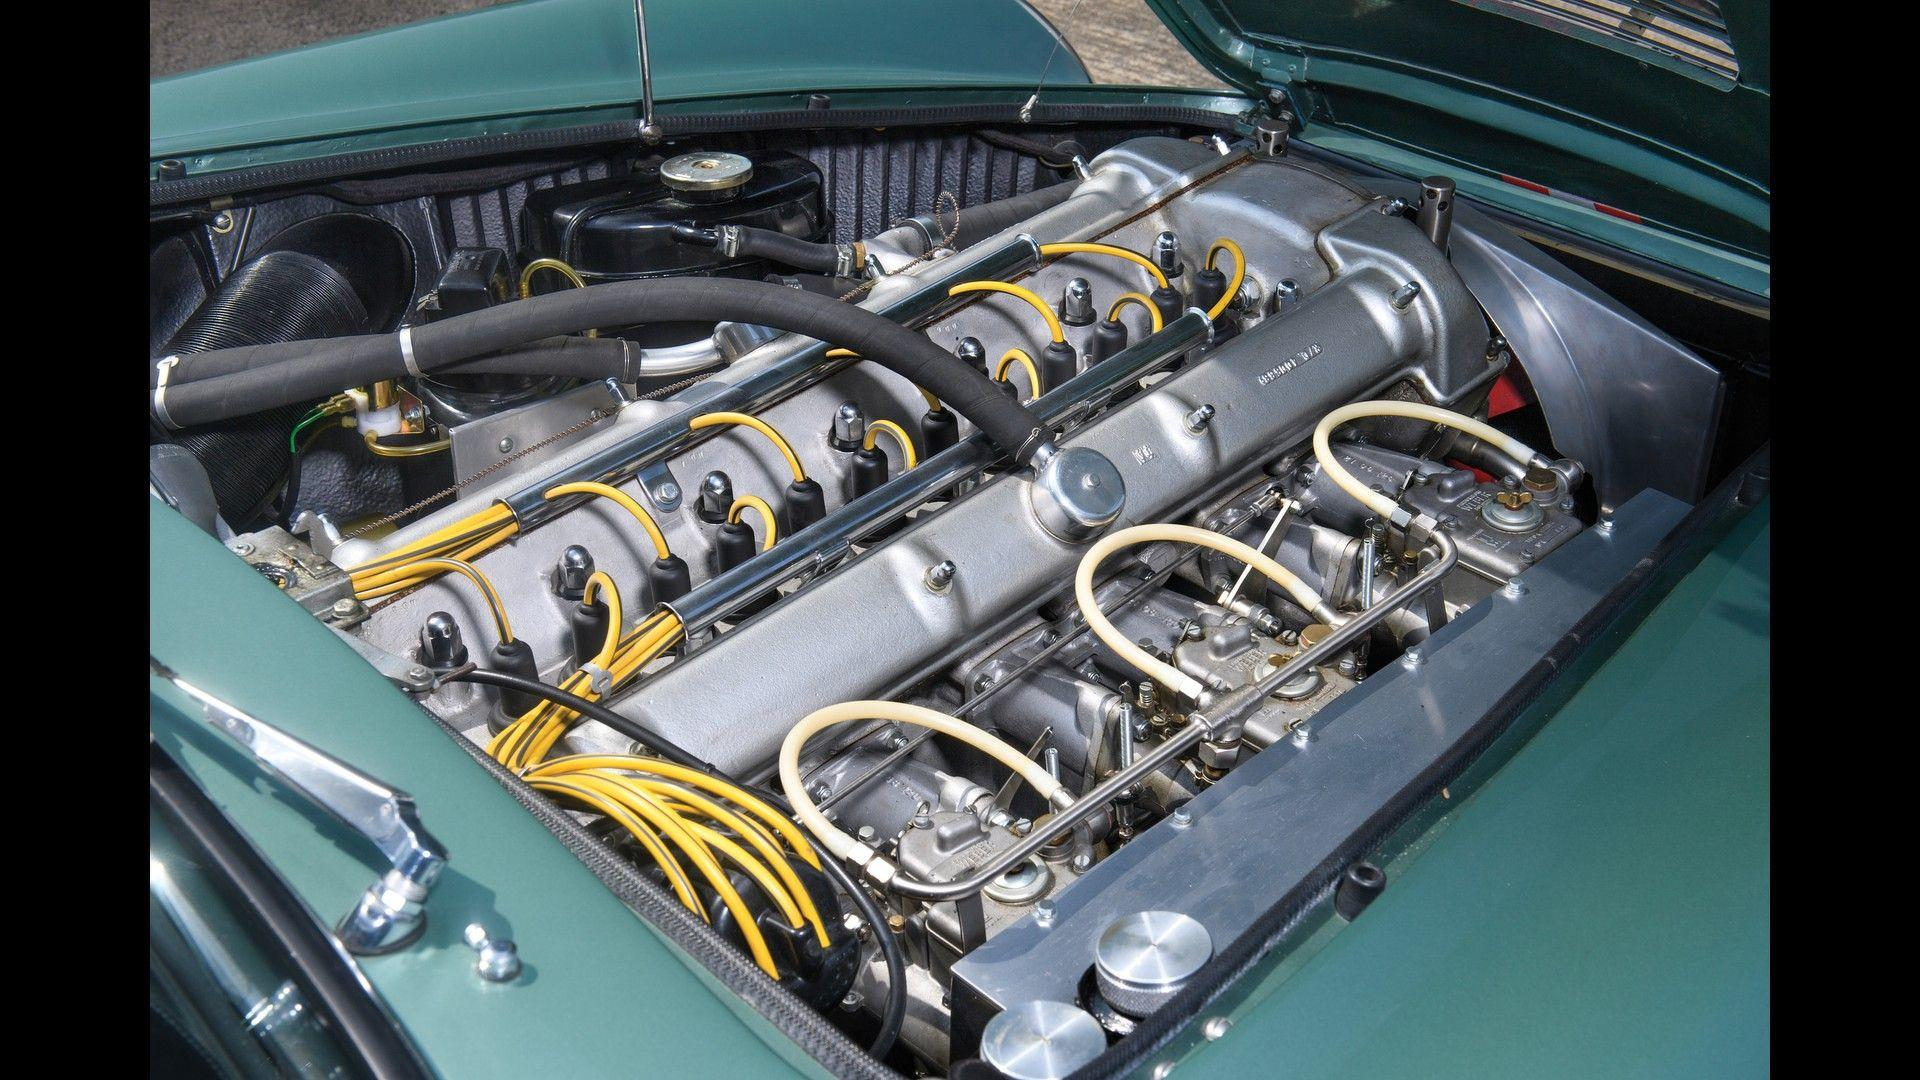 1959-aston-martin-db4gt-copyright-tim-scott-rm-sothebys (18)